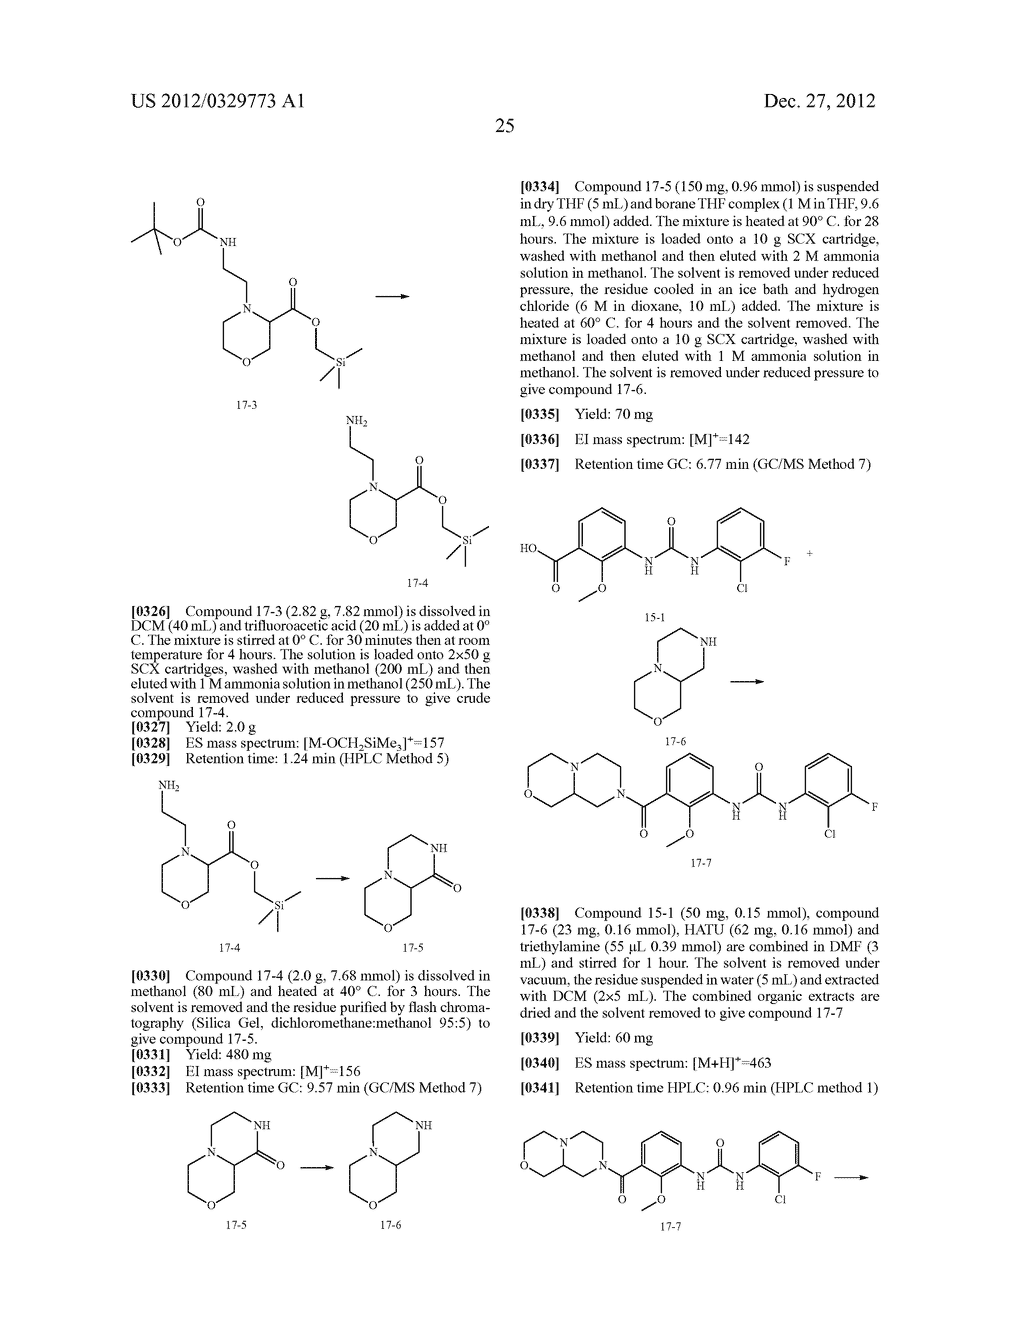 BICYCLIC RING SYSTEM SUBSTITUTED AMIDE FUNCTIONALISED PHENOLS AS     MEDICAMENTS - diagram, schematic, and image 26